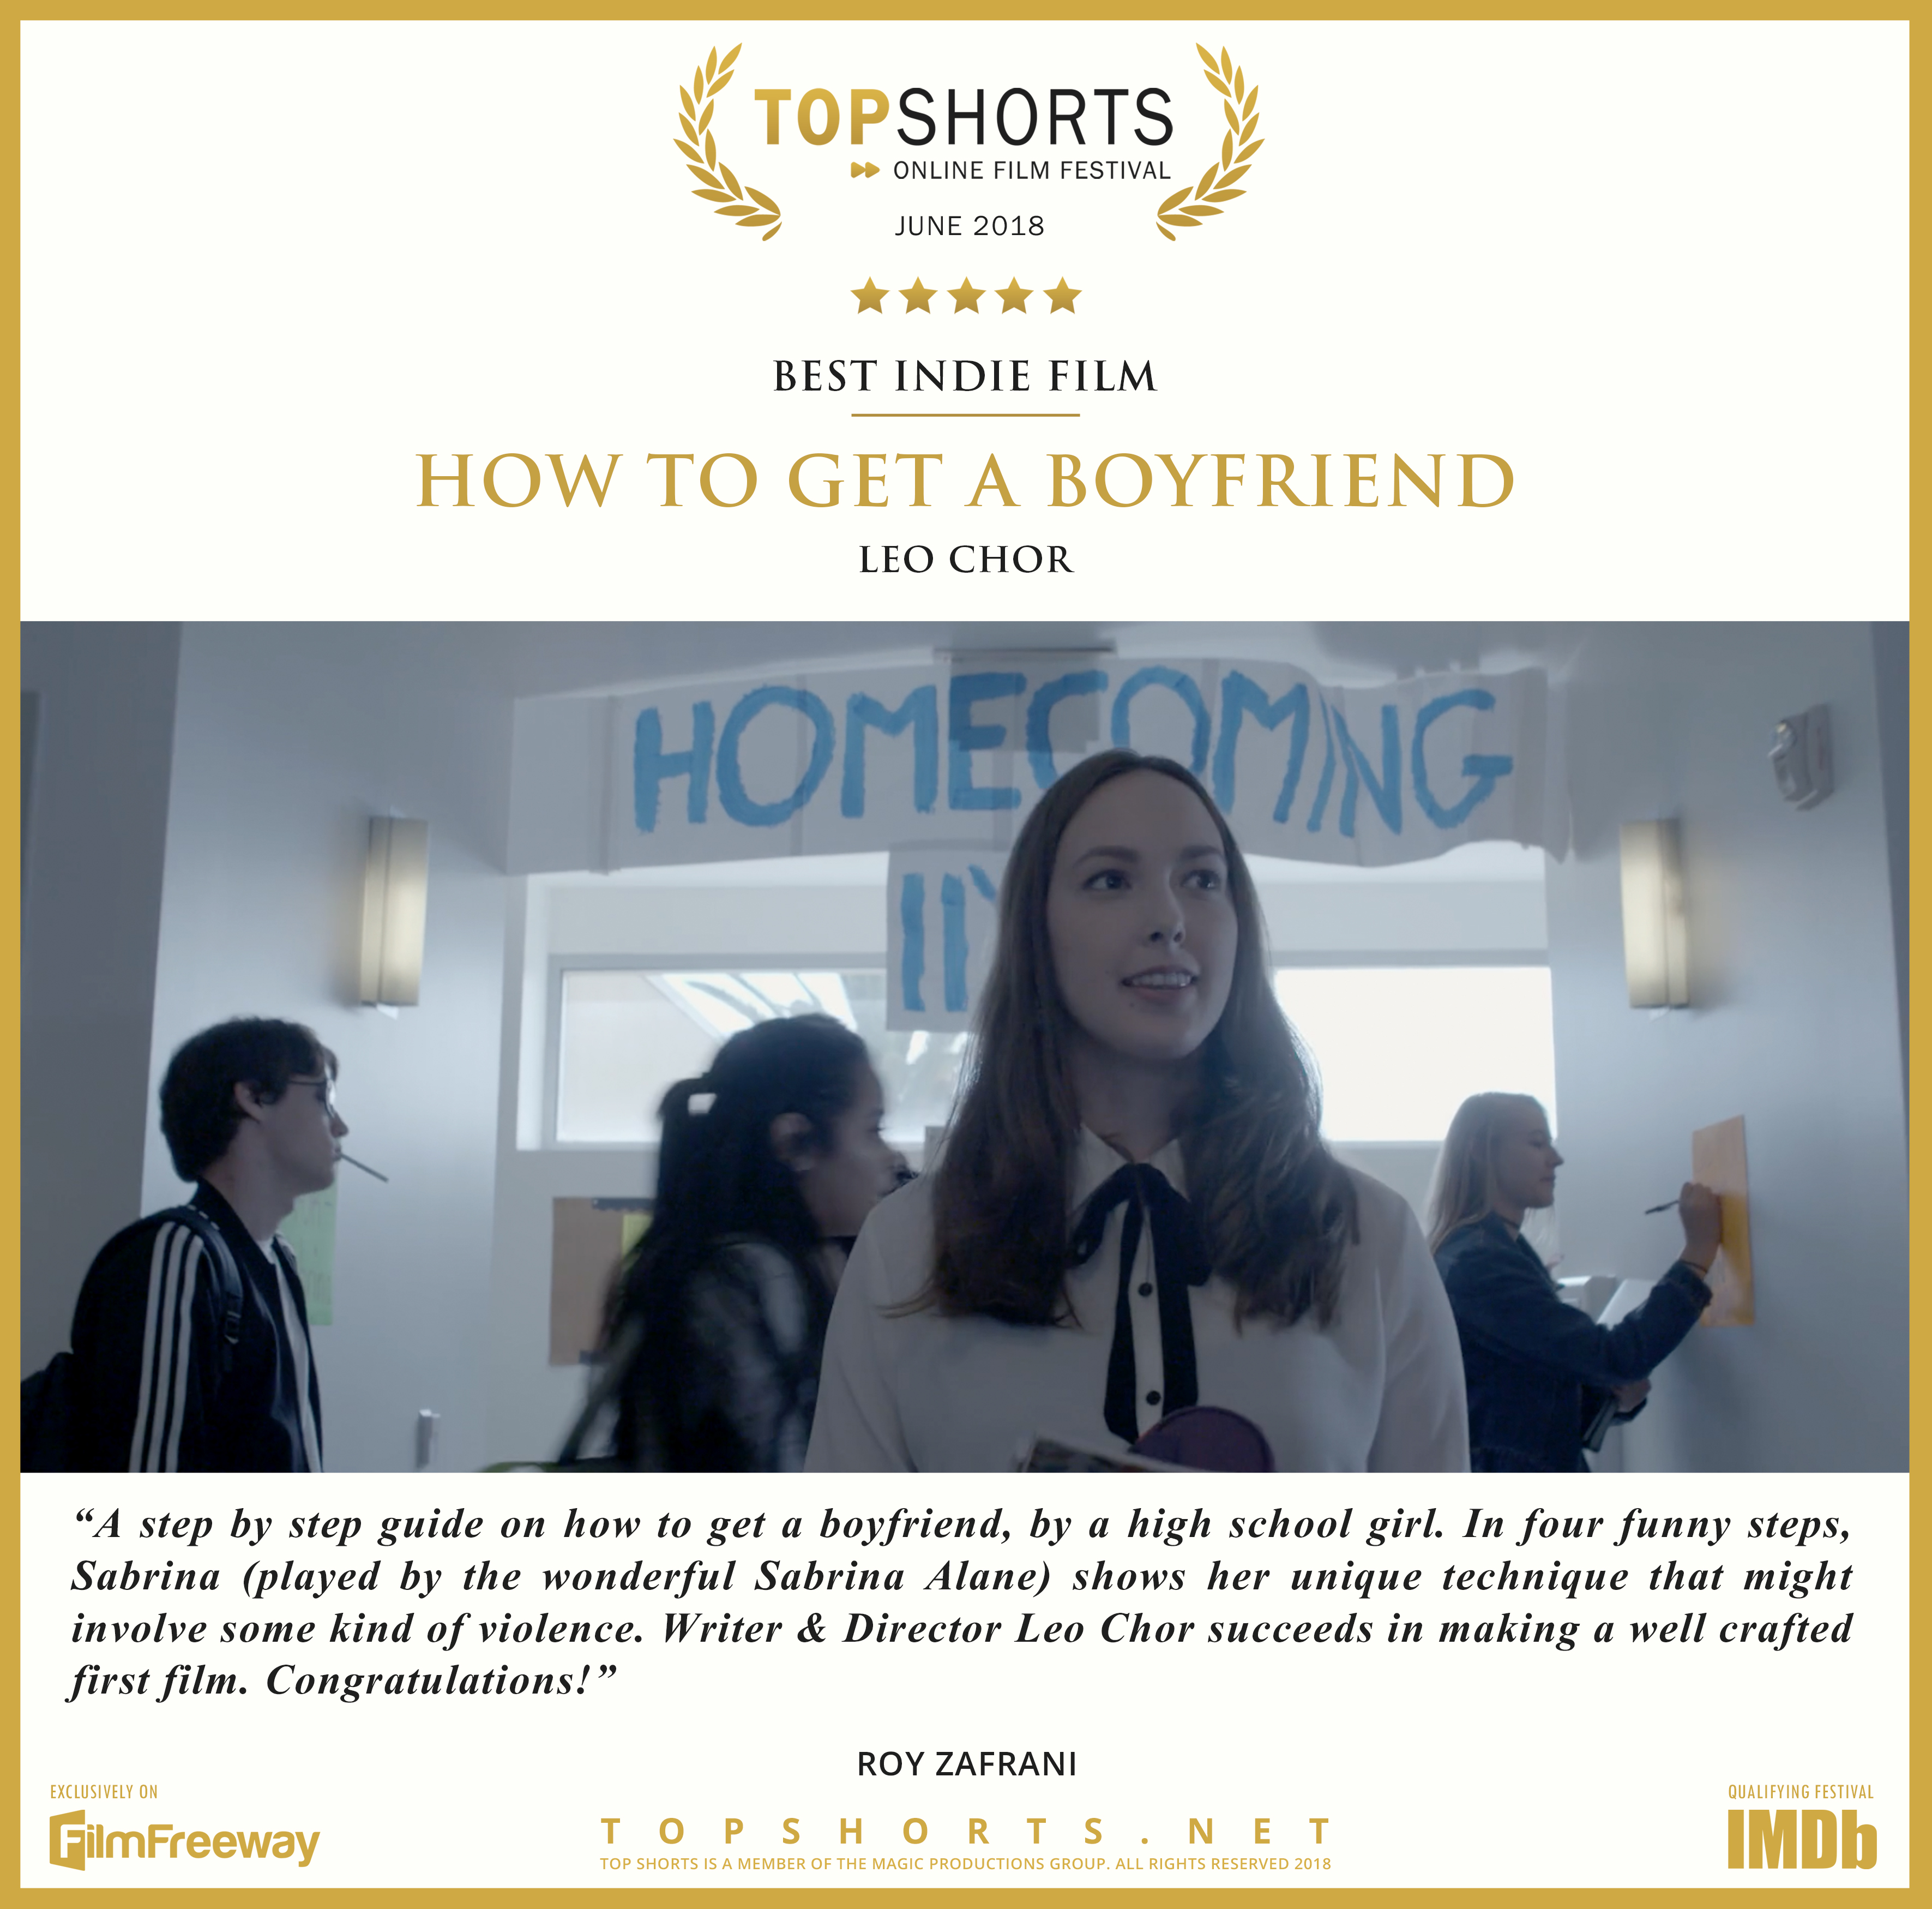 2018 06 Best Indie Film - How To Get A Boyfriend